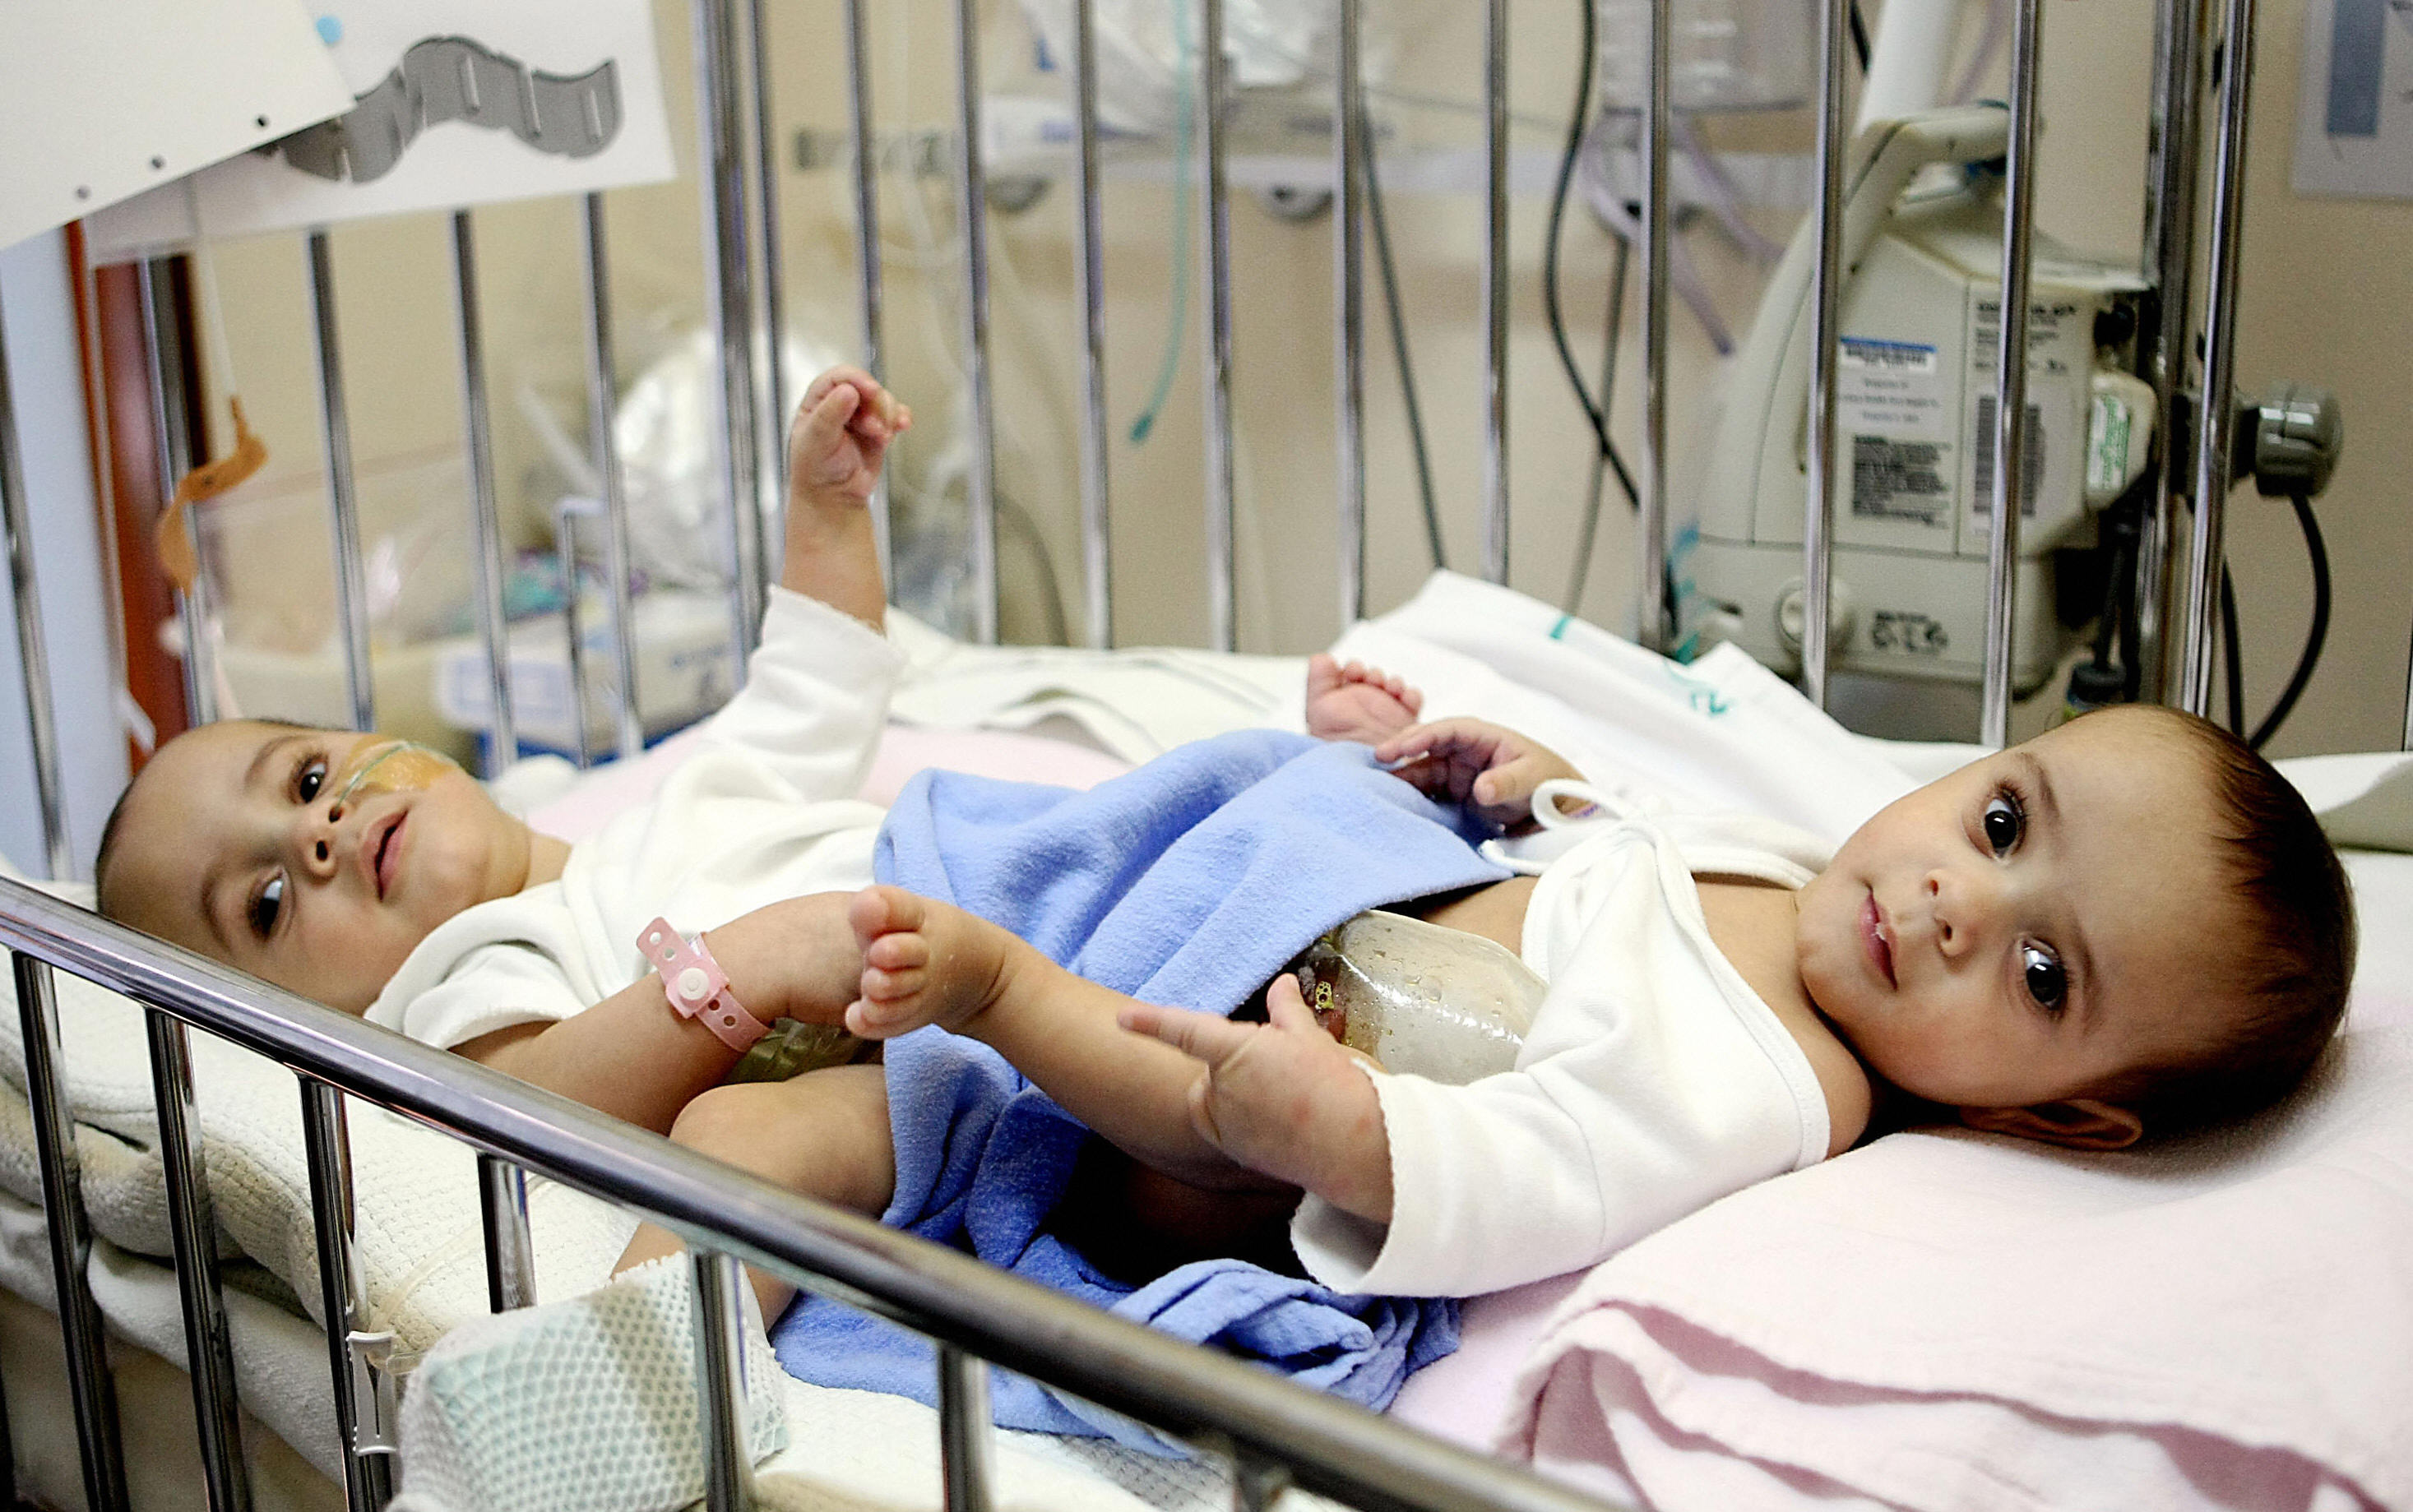 -/AFP/Getty Images. Egyptian conjoined twins Hassan (L) and Mahmud (R) at the National Guard hospital in the King Abdulaziz Medical City in Riyadh. The Twins will undergo a separation surgery today. King Abdulaziz Medical City has become internationally acclaimed for the separation of conjoined twins.